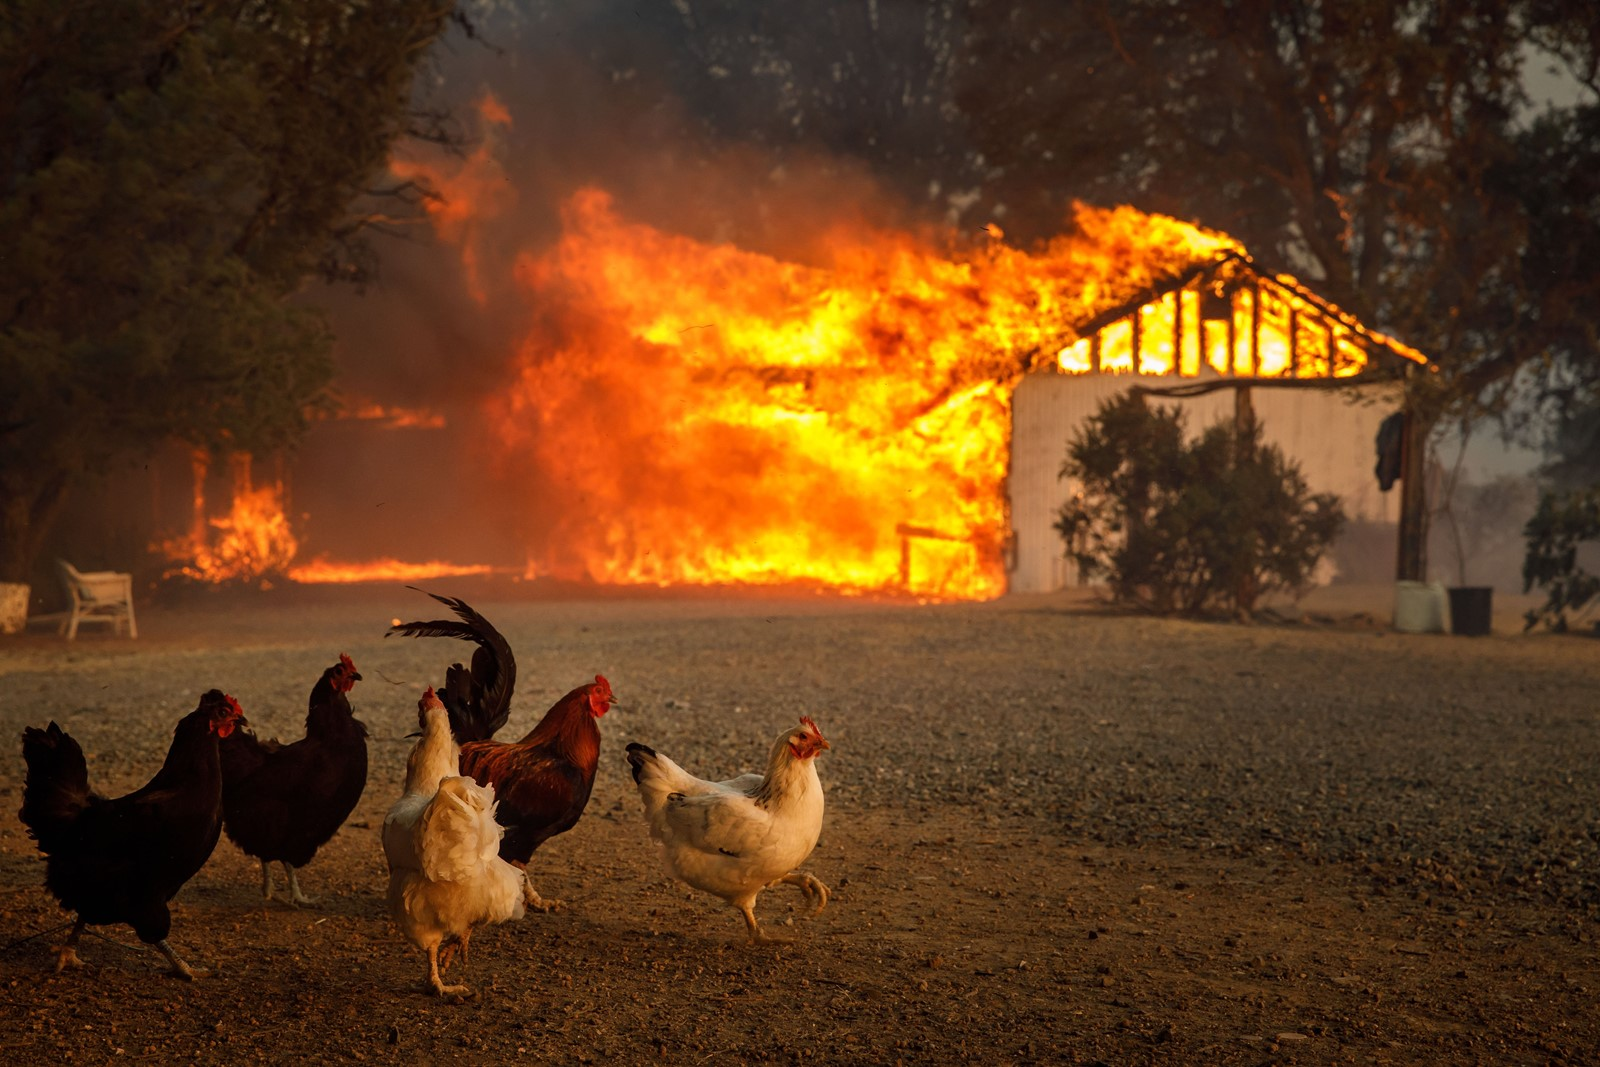 A home in Lakeport, California, burns on Tuesday. In hot weather, some heat can be carried away by water, as moisture in the soil evaporates. But soil with little moisture, as in a drought, leaves the heat nowhere to go. — Photograph: Marcus Yam/Los Angeles Times.